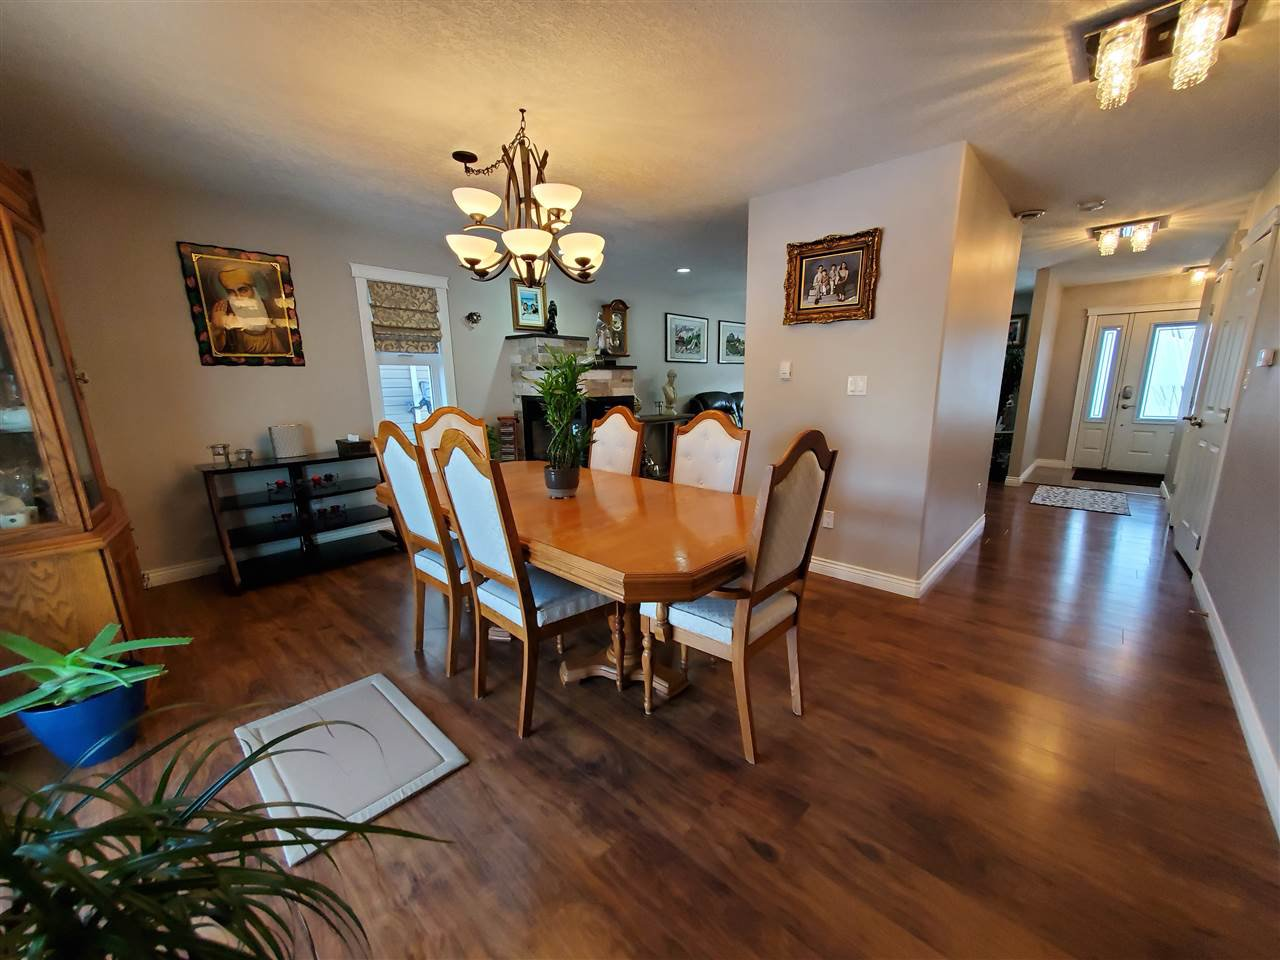 Photo 16: Photos: 150 NICKEL RIDGE Avenue in Quesnel: Quesnel - Town House for sale (Quesnel (Zone 28))  : MLS®# R2436105